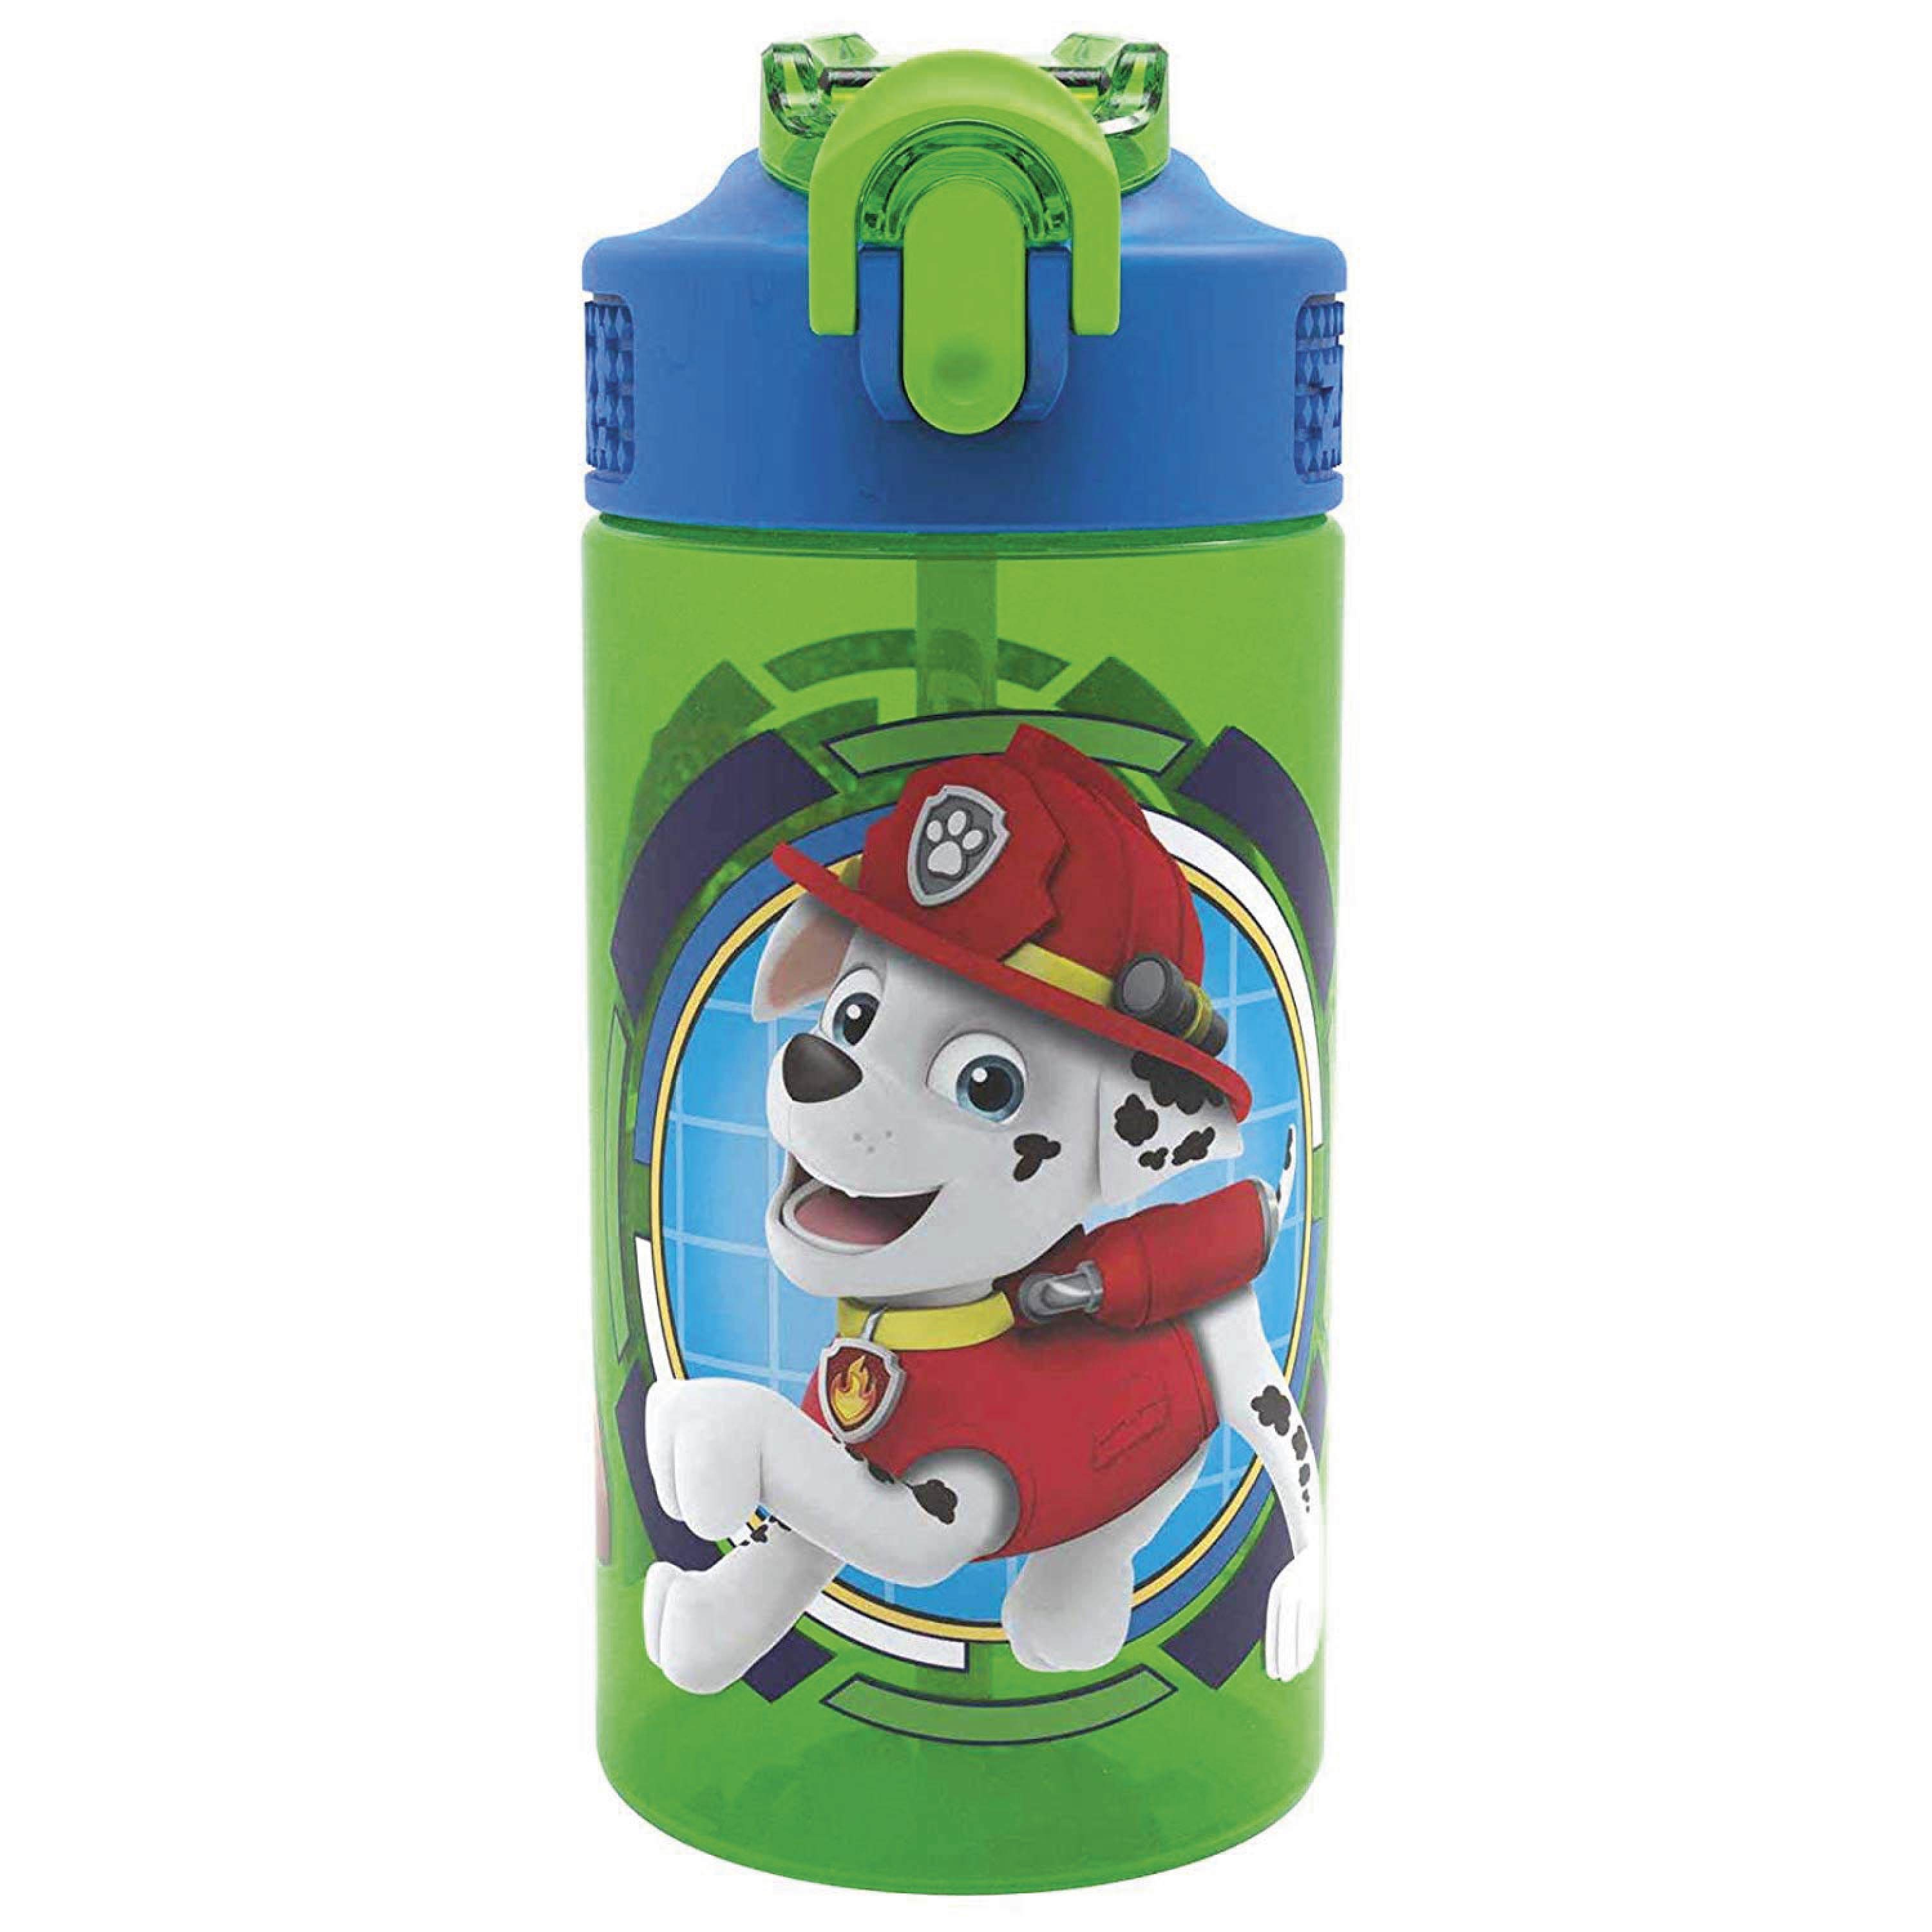 Paw Patrol 16 ounce Water Bottle, Rocky, Rubble & Chase slideshow image 1